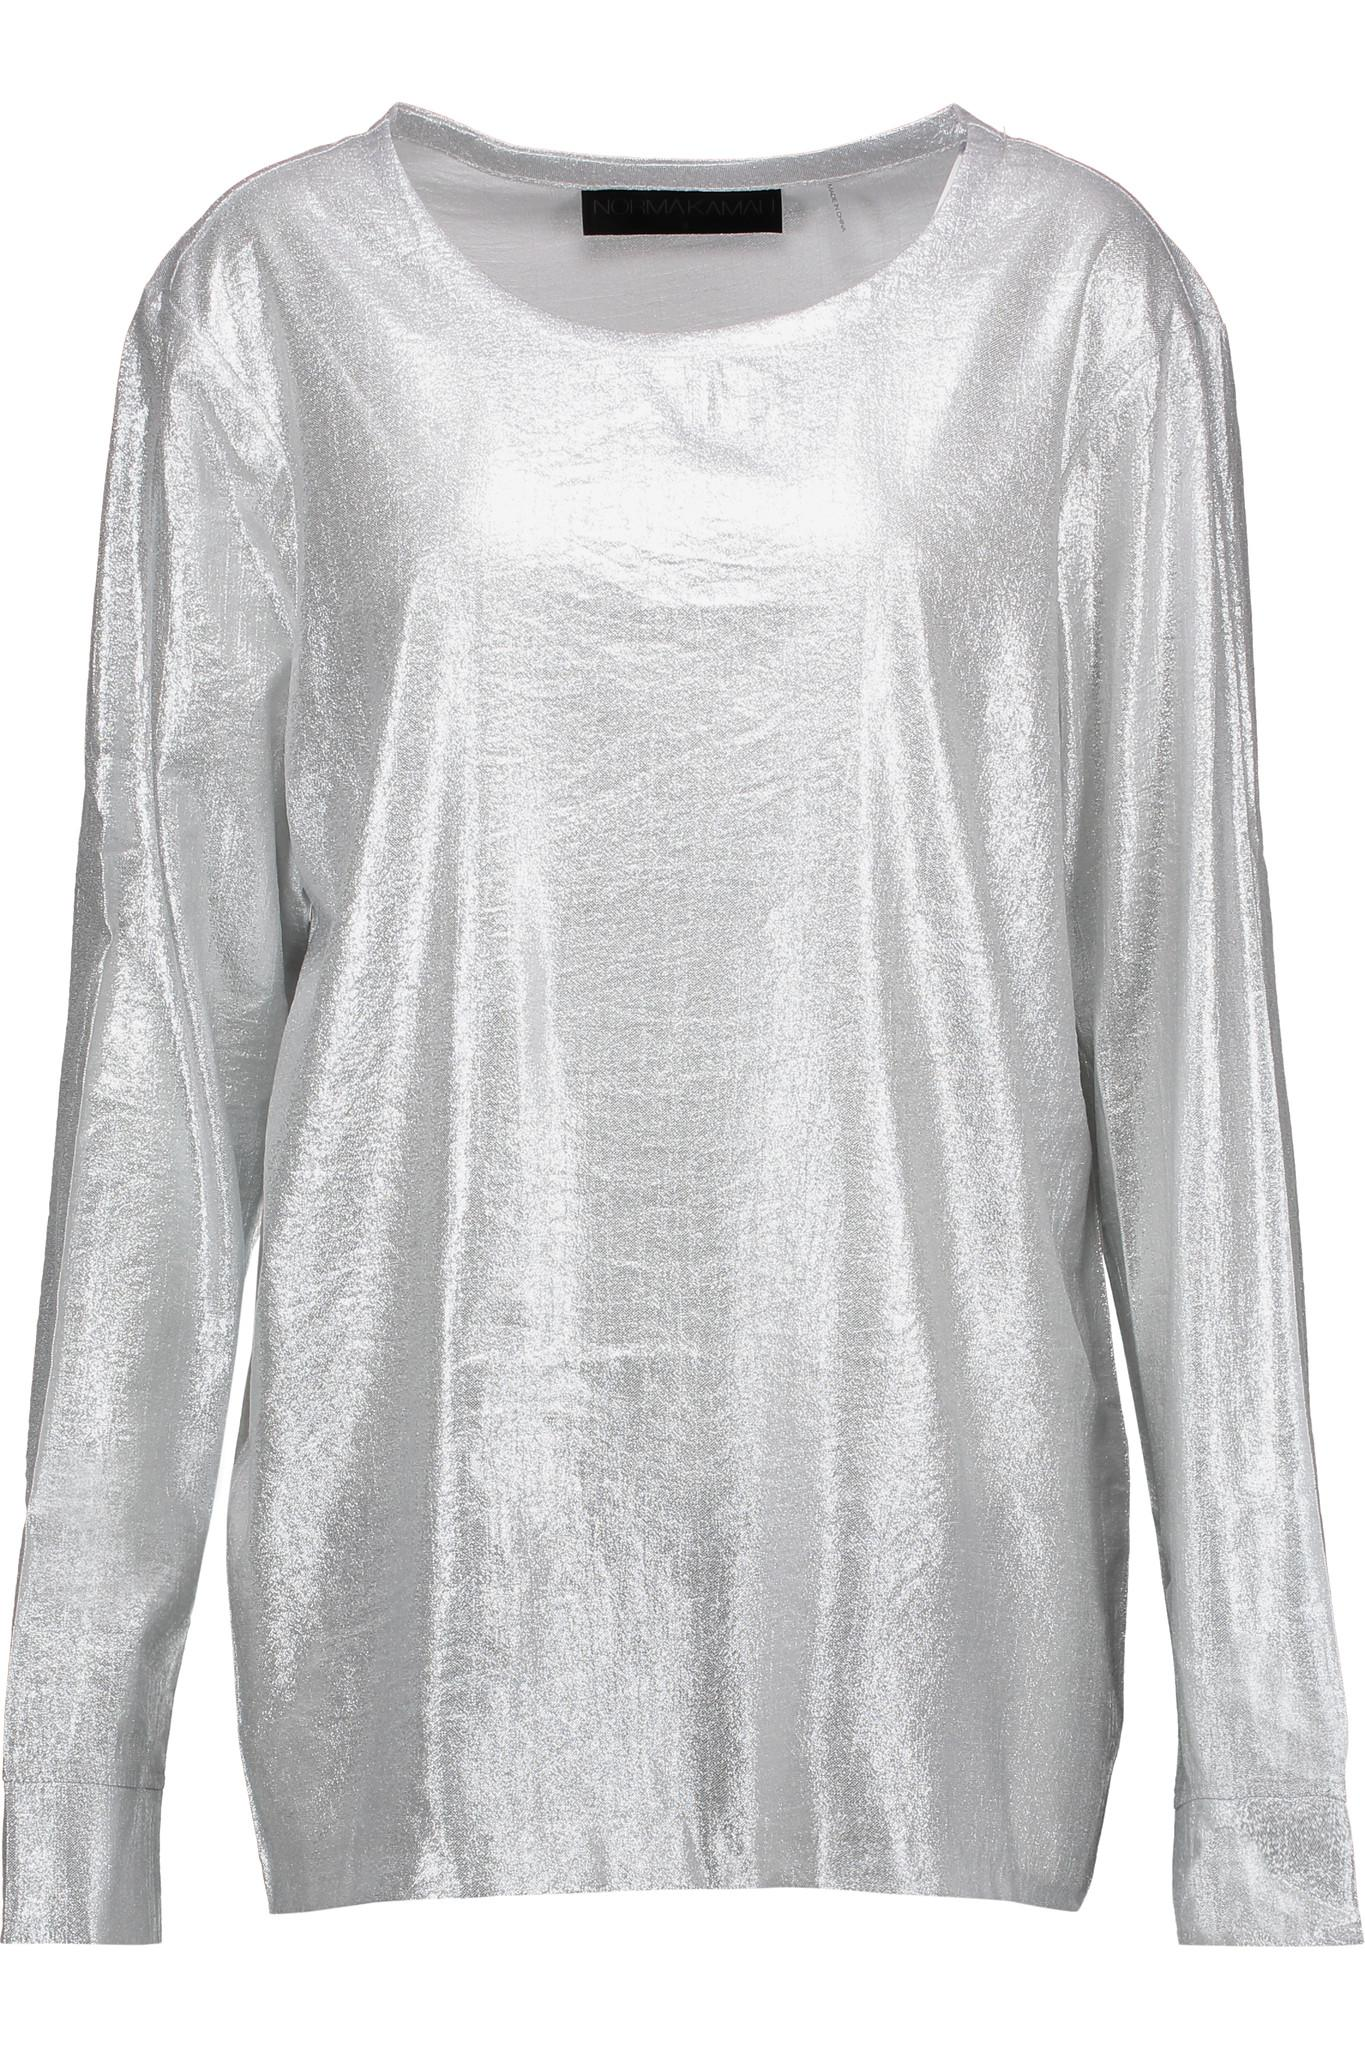 33a963da Norma Kamali Lamé Top in Metallic - Lyst